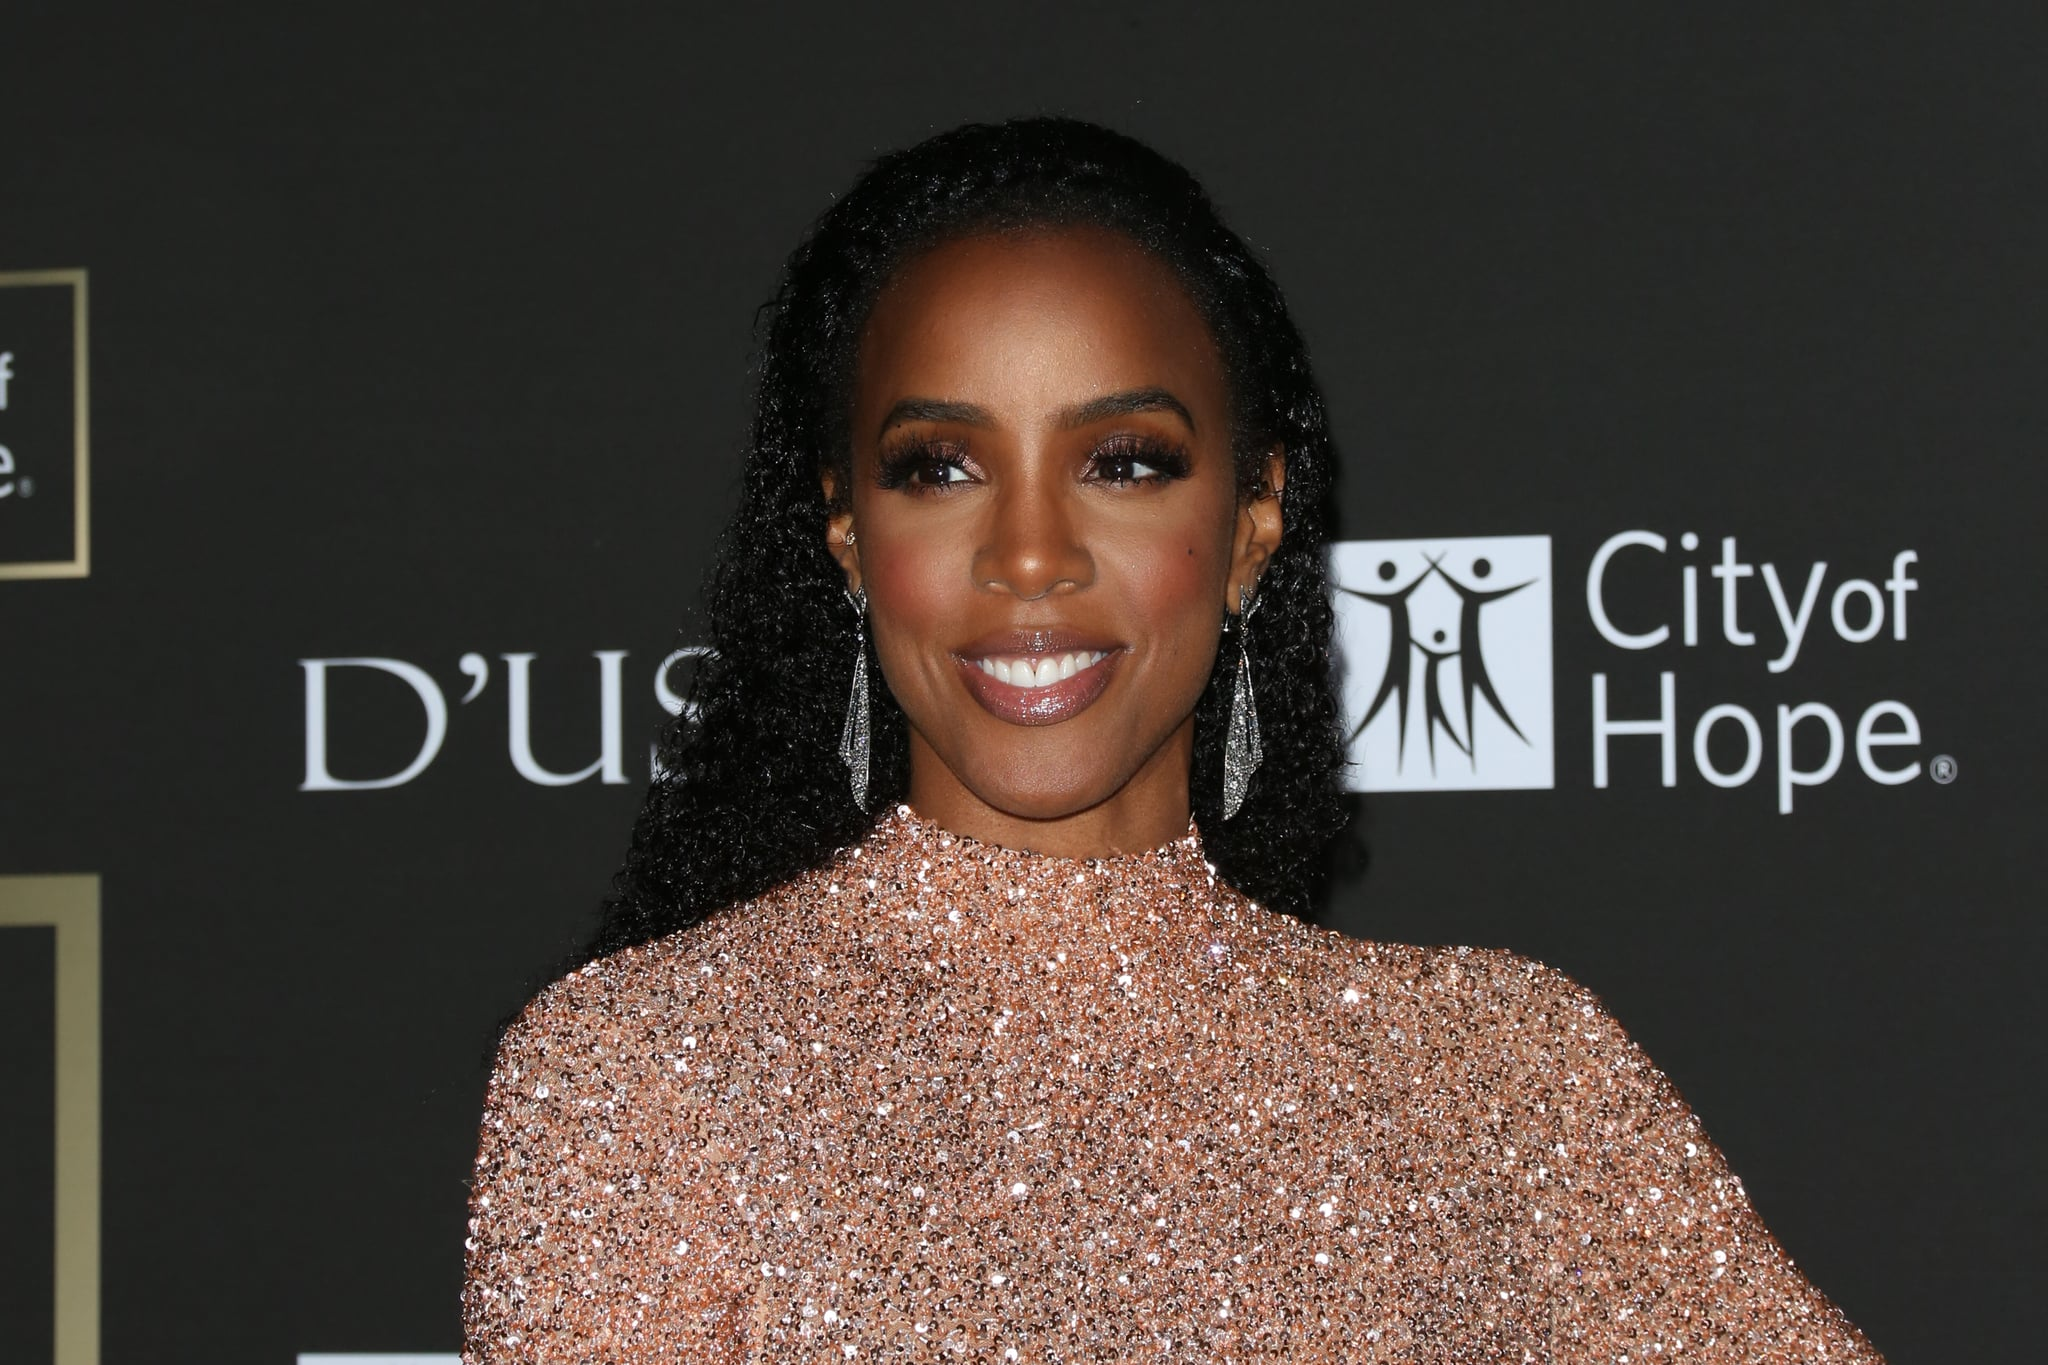 LOS ANGELES, CA - OCTOBER 11:  Singer Kelly Rowland attends the City Of Hope Gala on October 11, 2018 in Los Angeles, California.  (Photo by Paul Archuleta/FilmMagic)